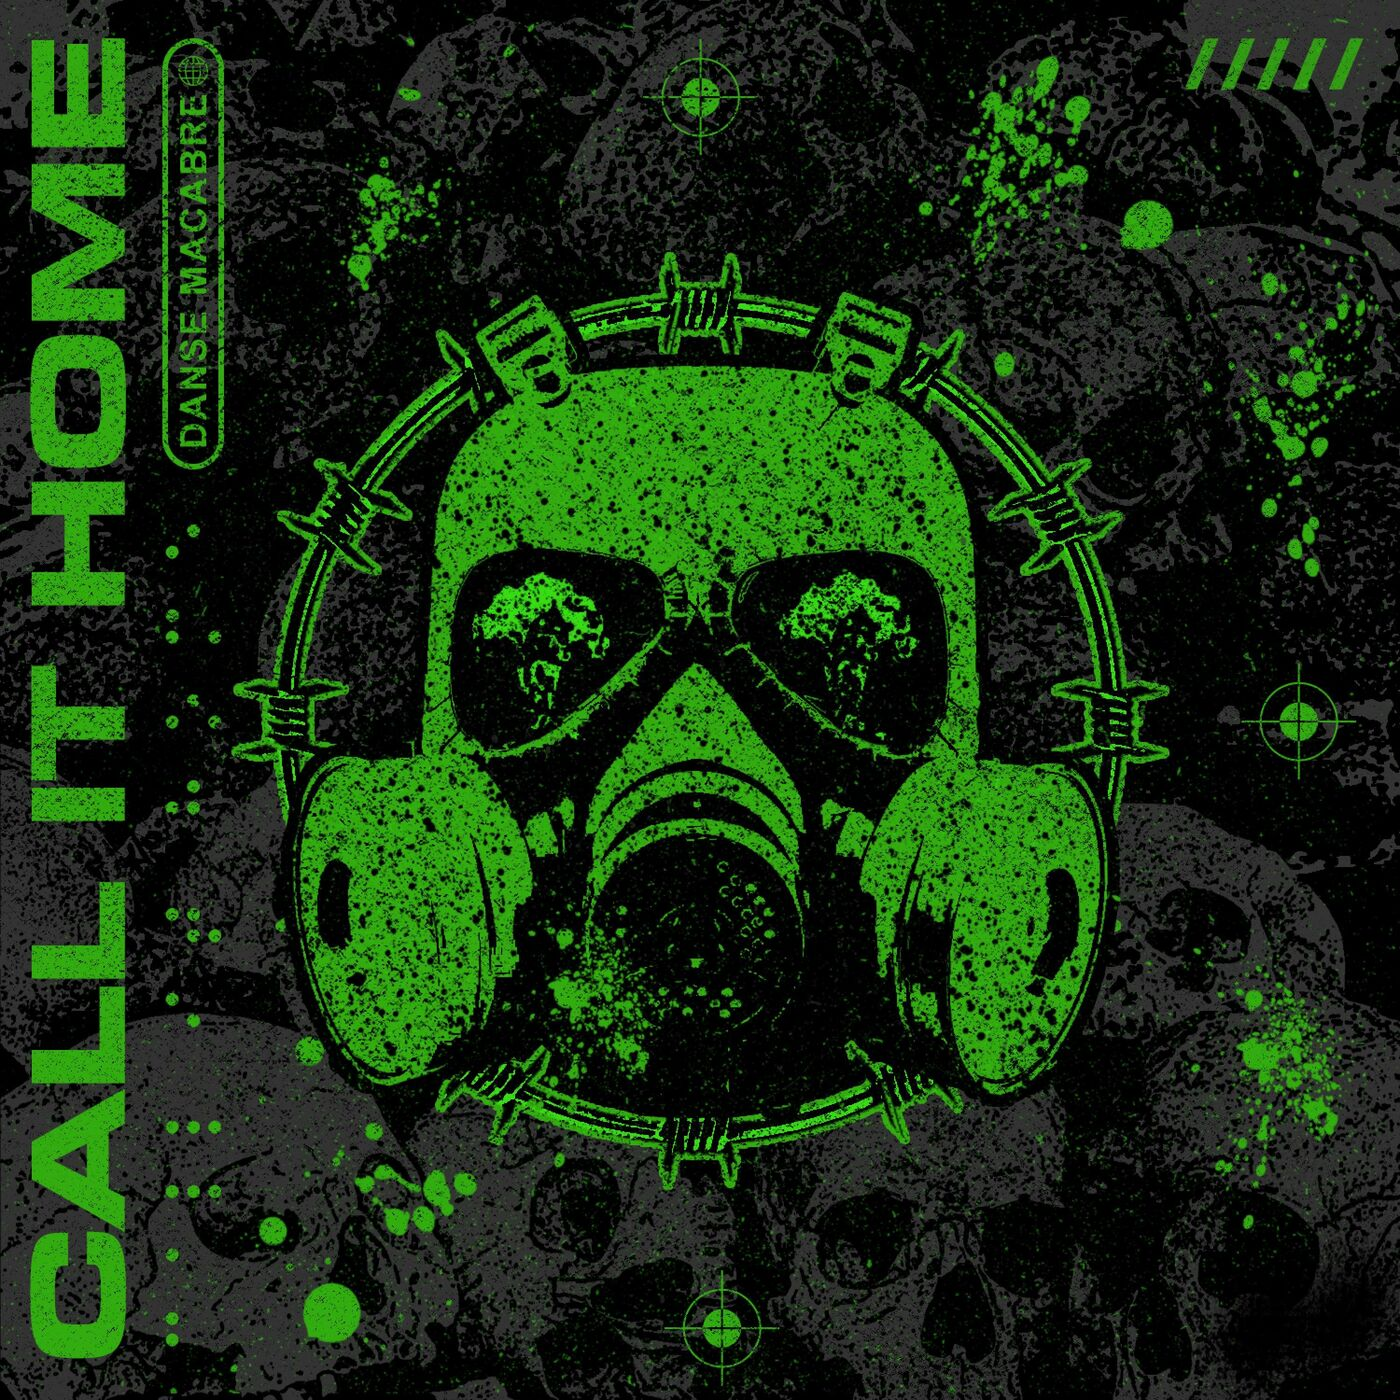 Call It Home - Danse Macabre [single] (2020)